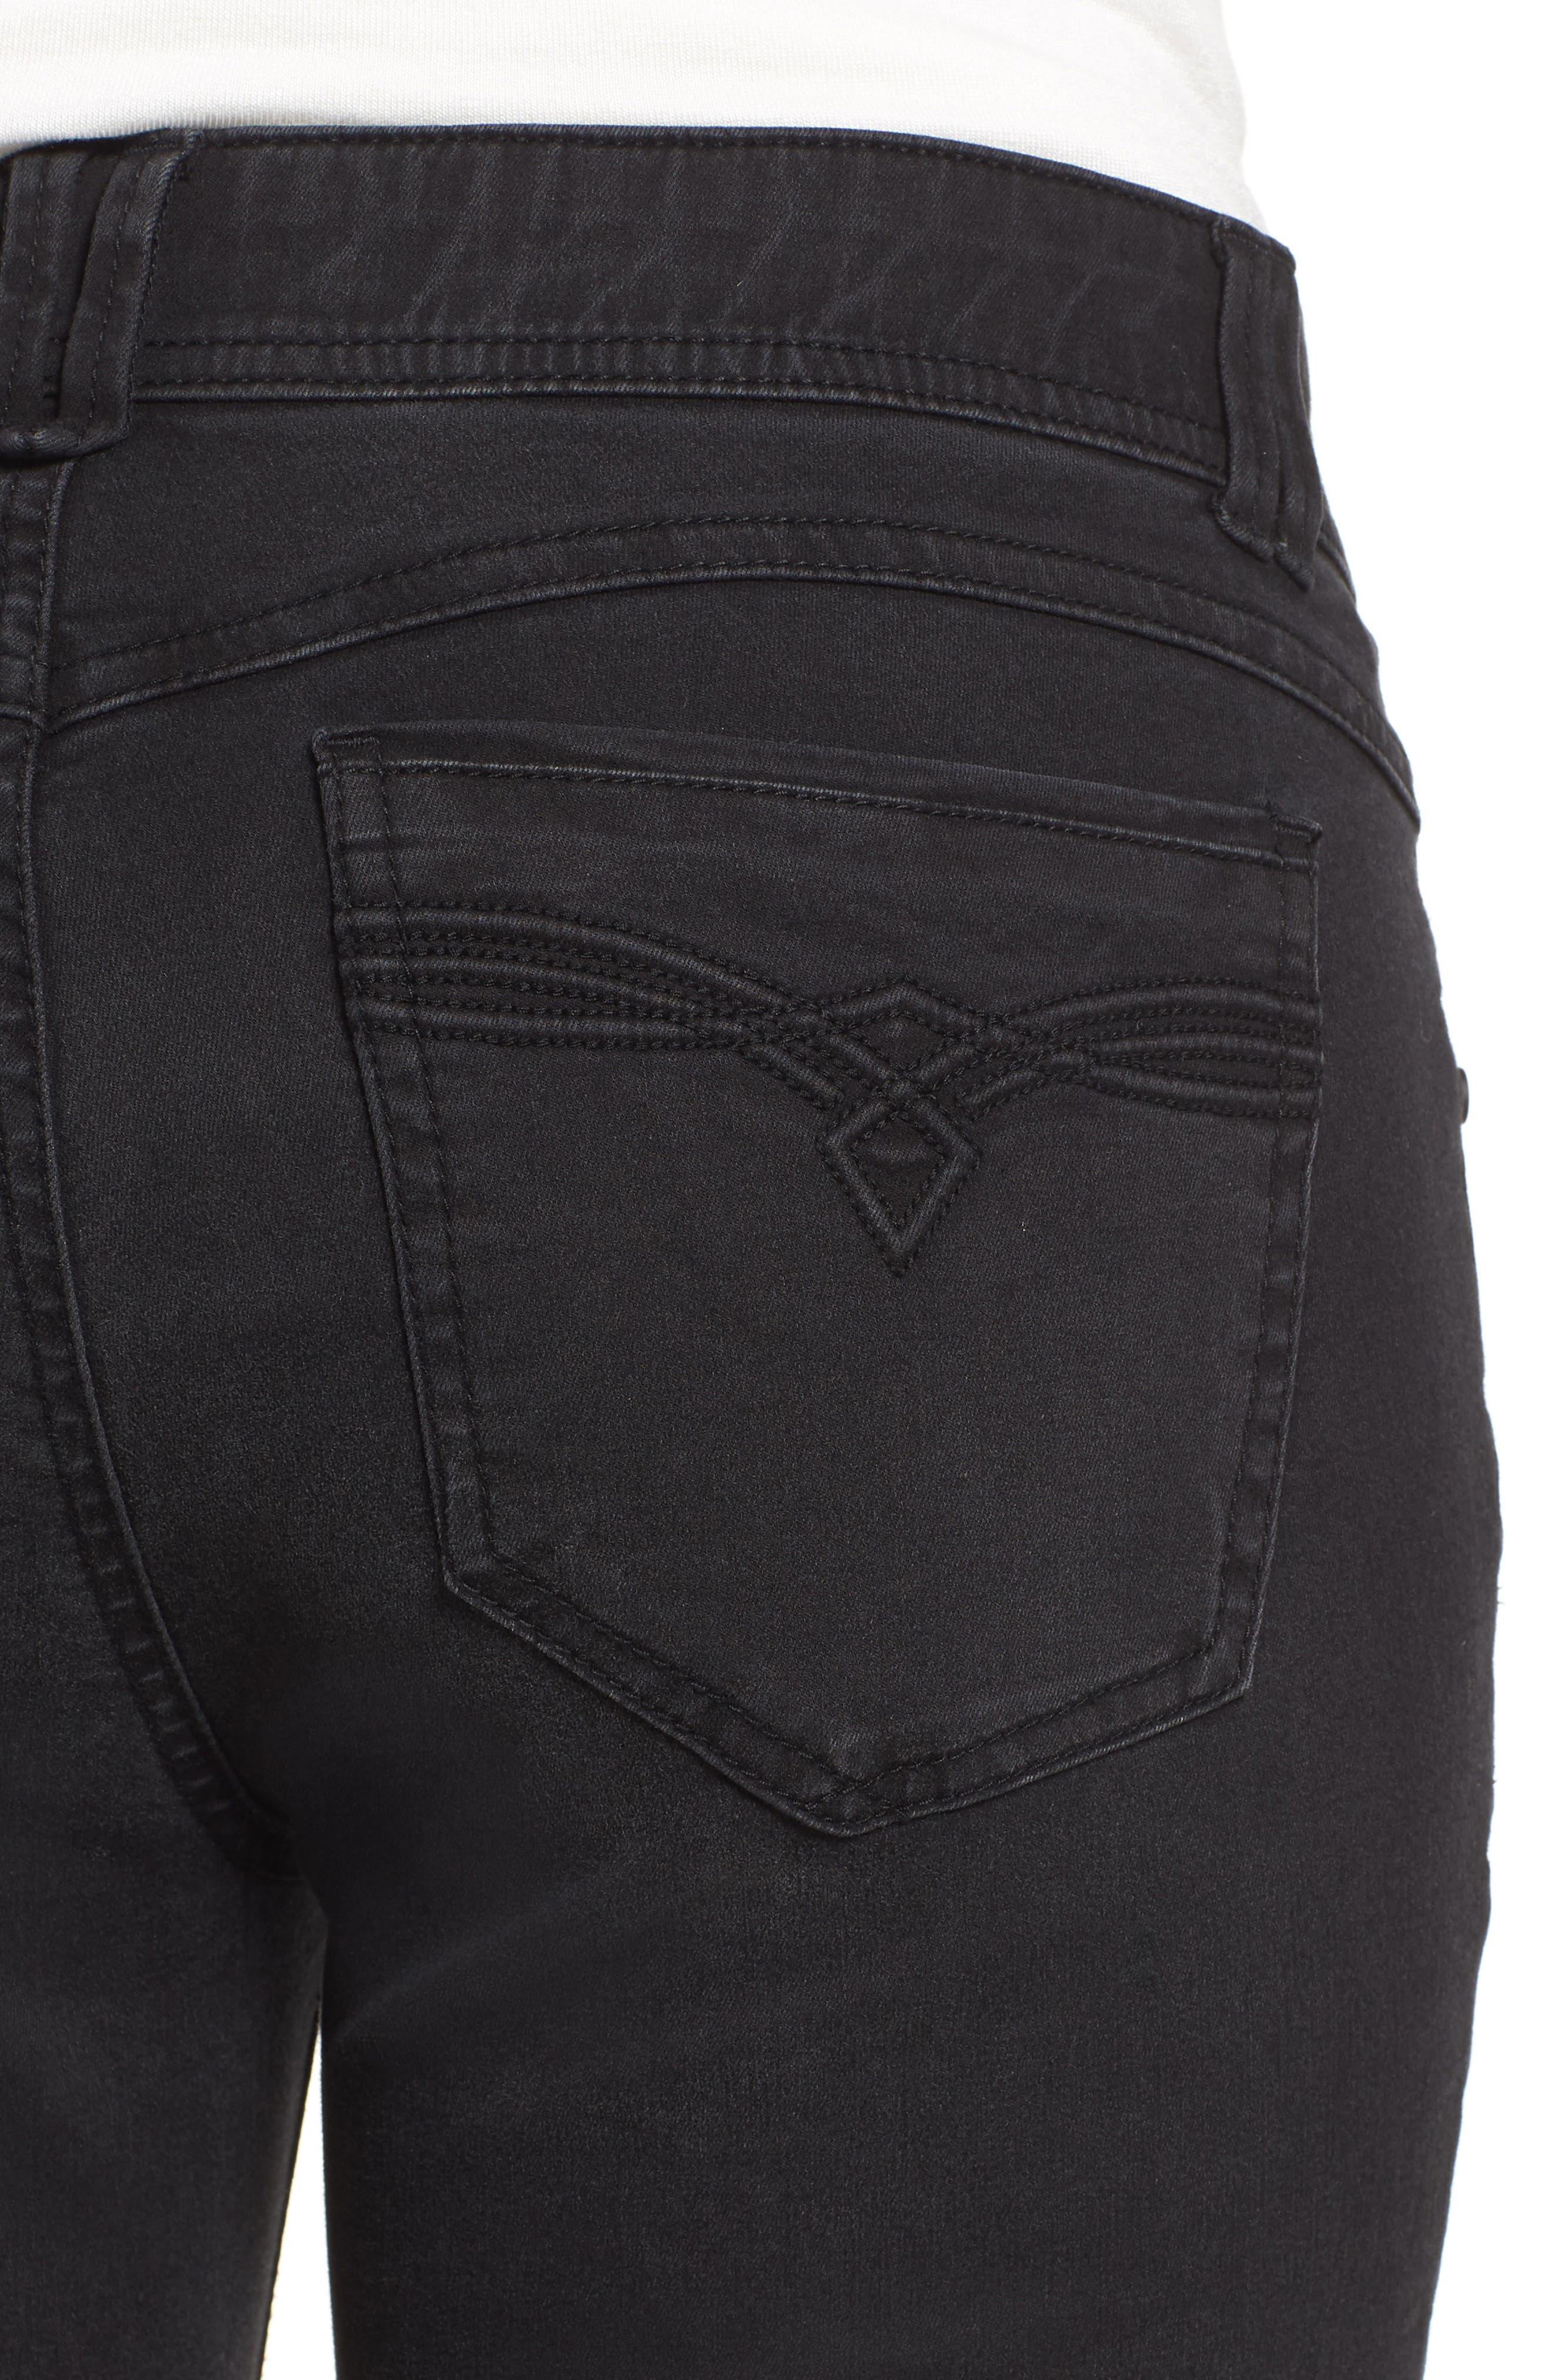 Ab-solution Itty Bitty Bootcut Jeans,                             Alternate thumbnail 4, color,                             BK- BLACK